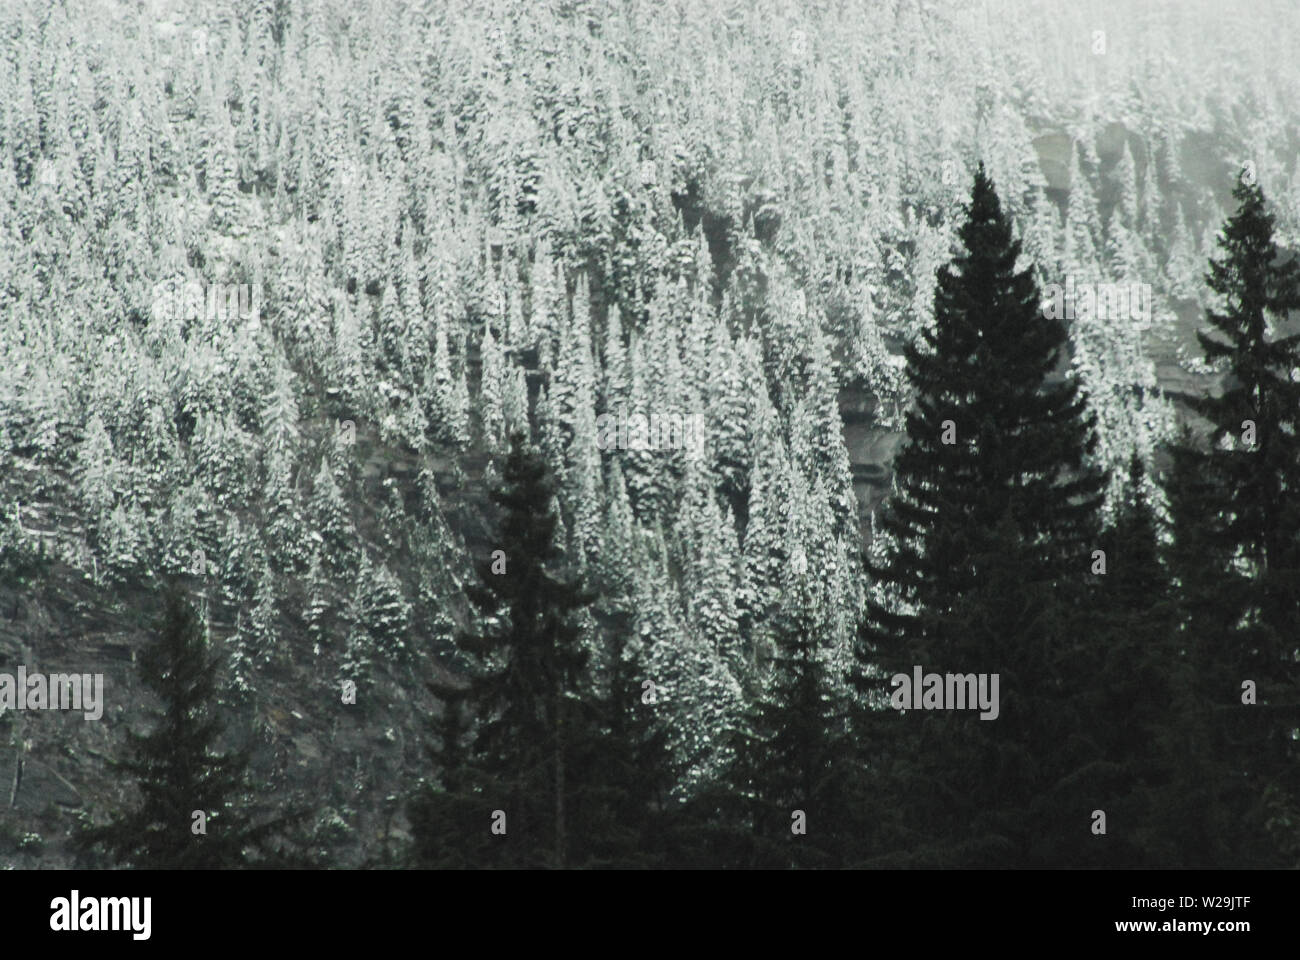 Gorgeous contrasts of Winter snow covered Conifer forests in the mountains of British Columbia, Canada. - Stock Image